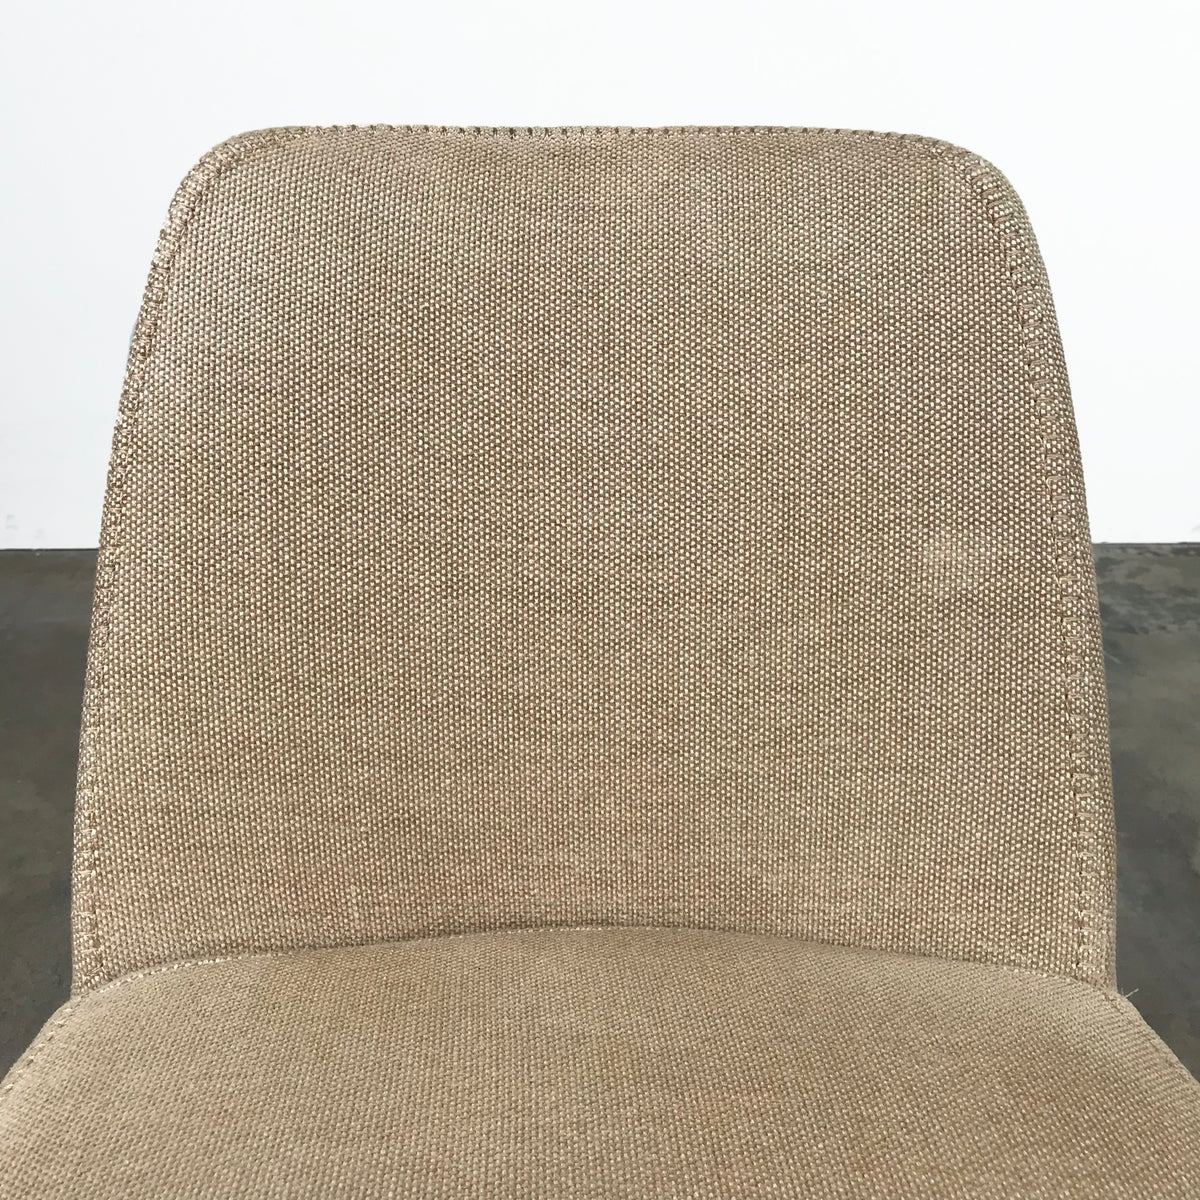 Febo Dining Chair (8 in stock)